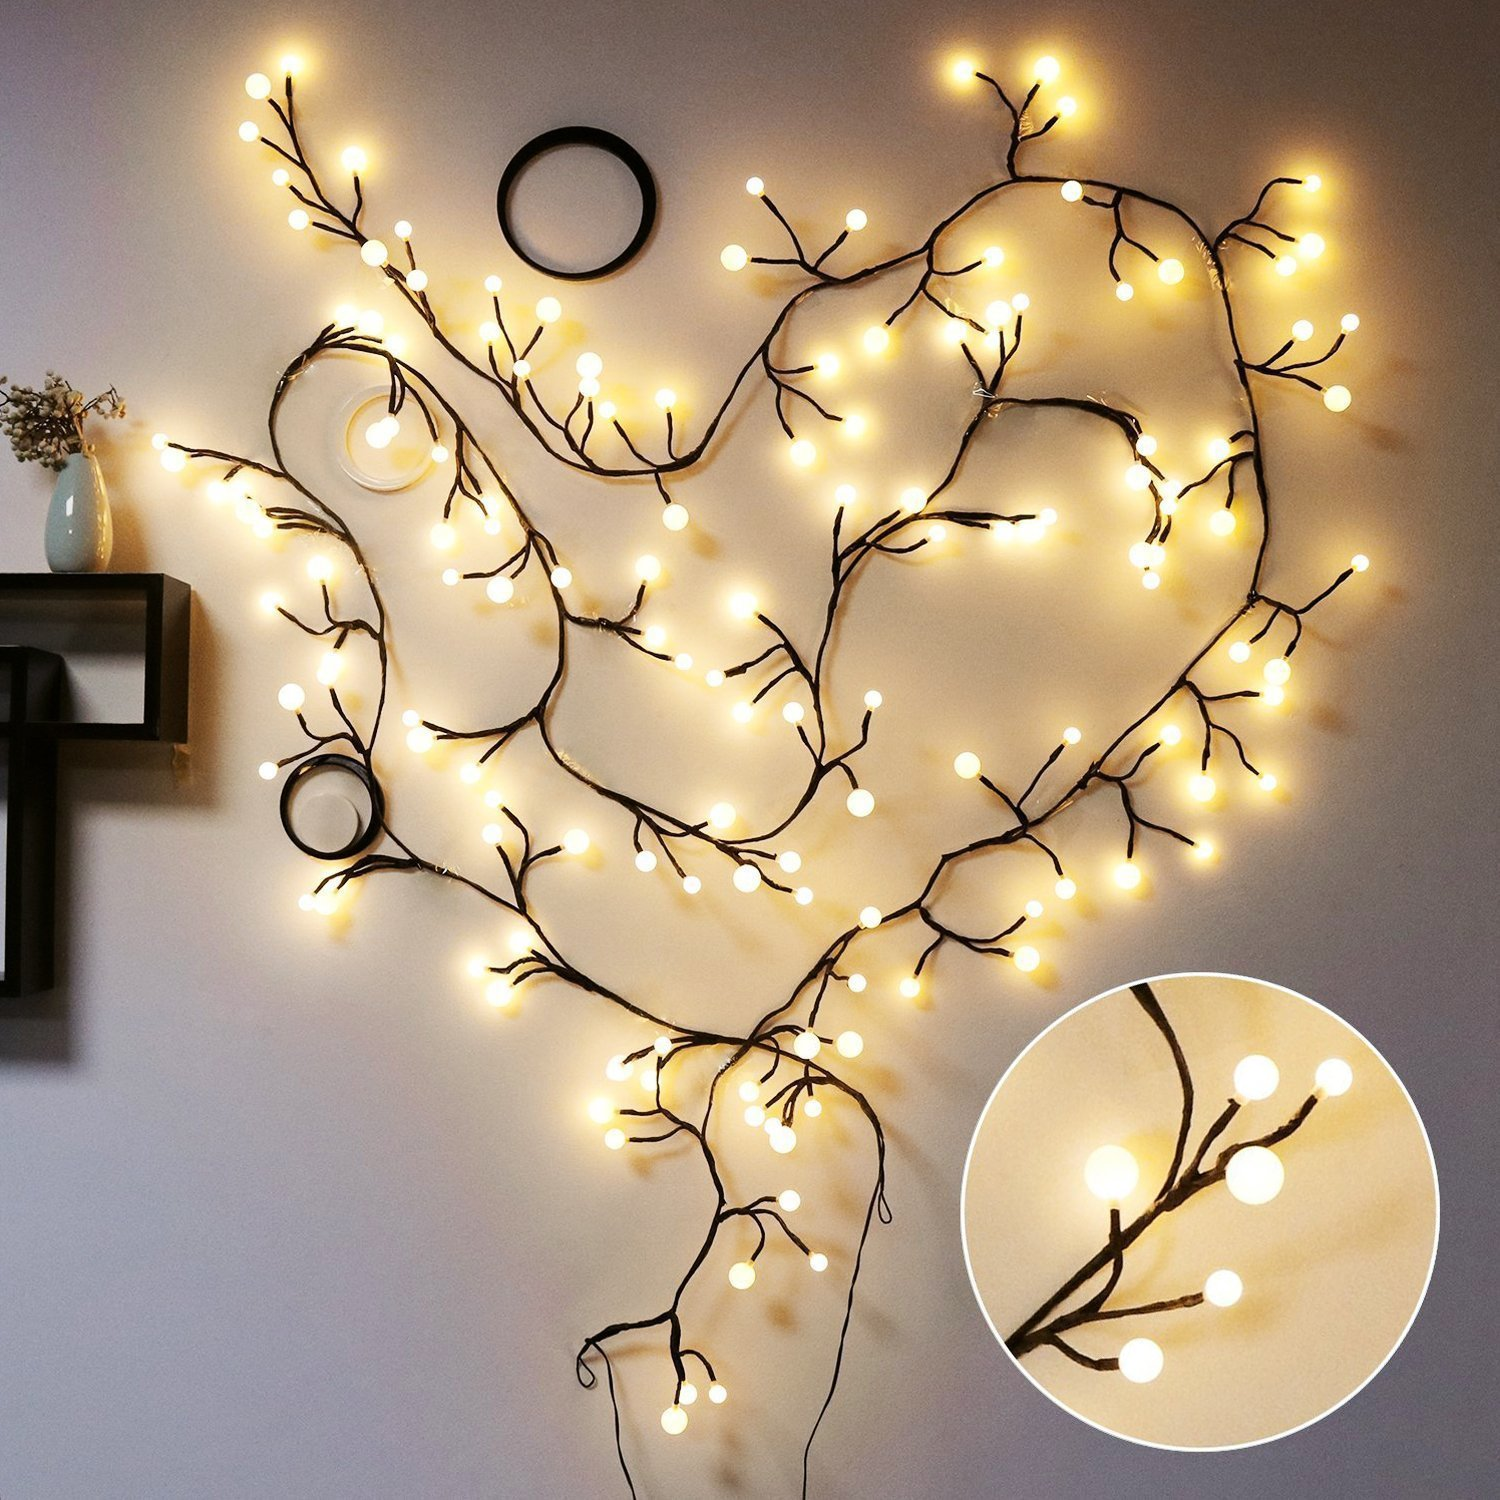 Decorative Fairy Lights, Globe String Light,  Gangdise LED String Lights with 72 Bulbs IP65 Waterproof Fairy Lights for Patio, Garden, Cafe Store,Wedding,Party